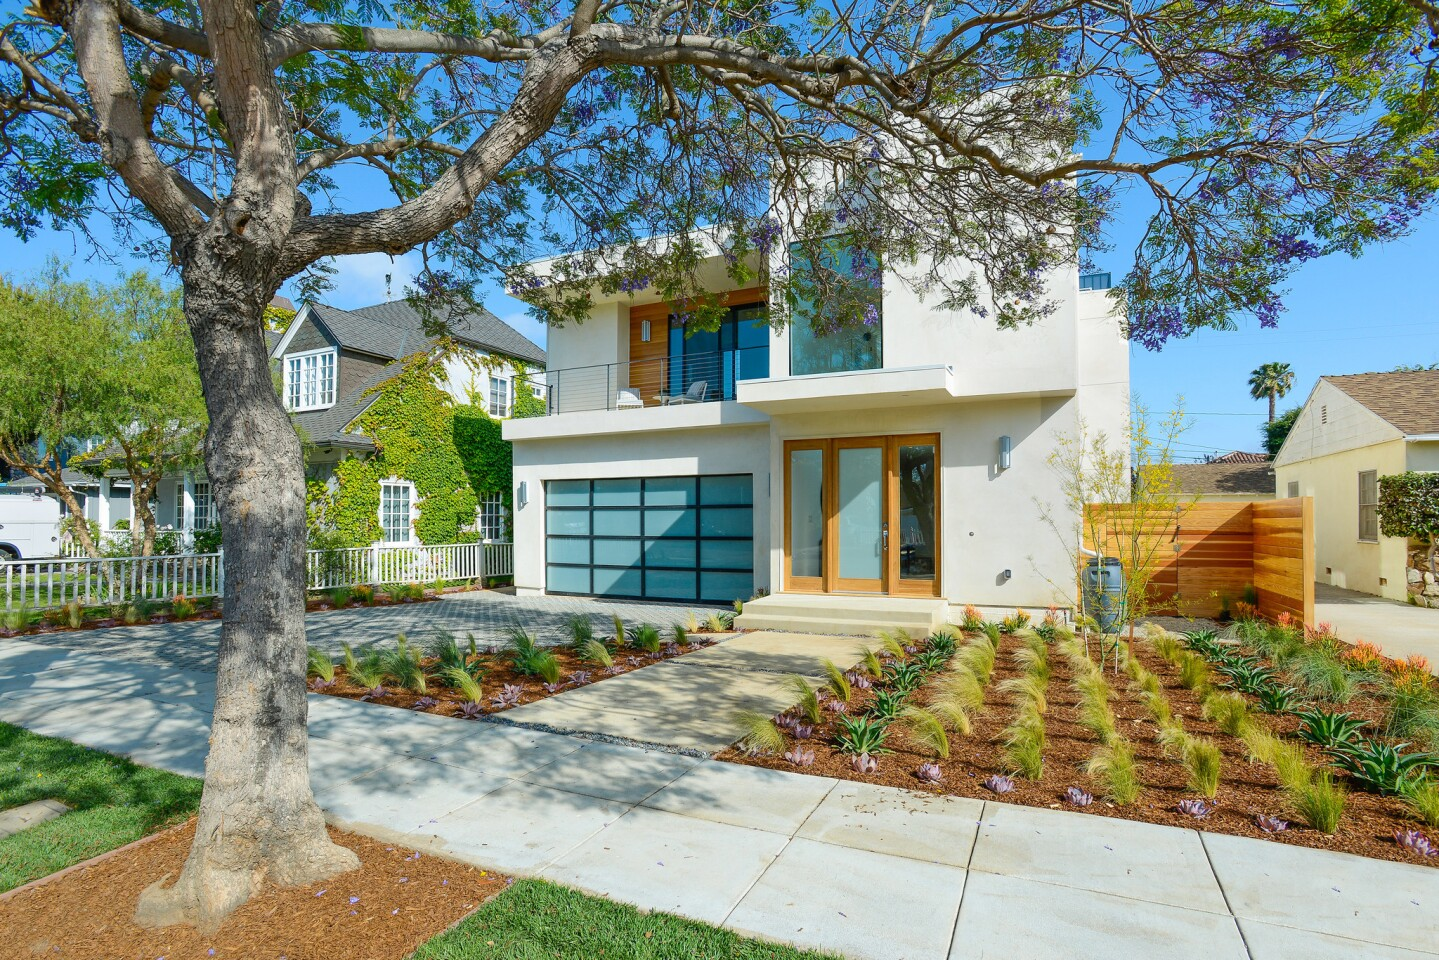 Home of the Day: A fresh start on the Westside